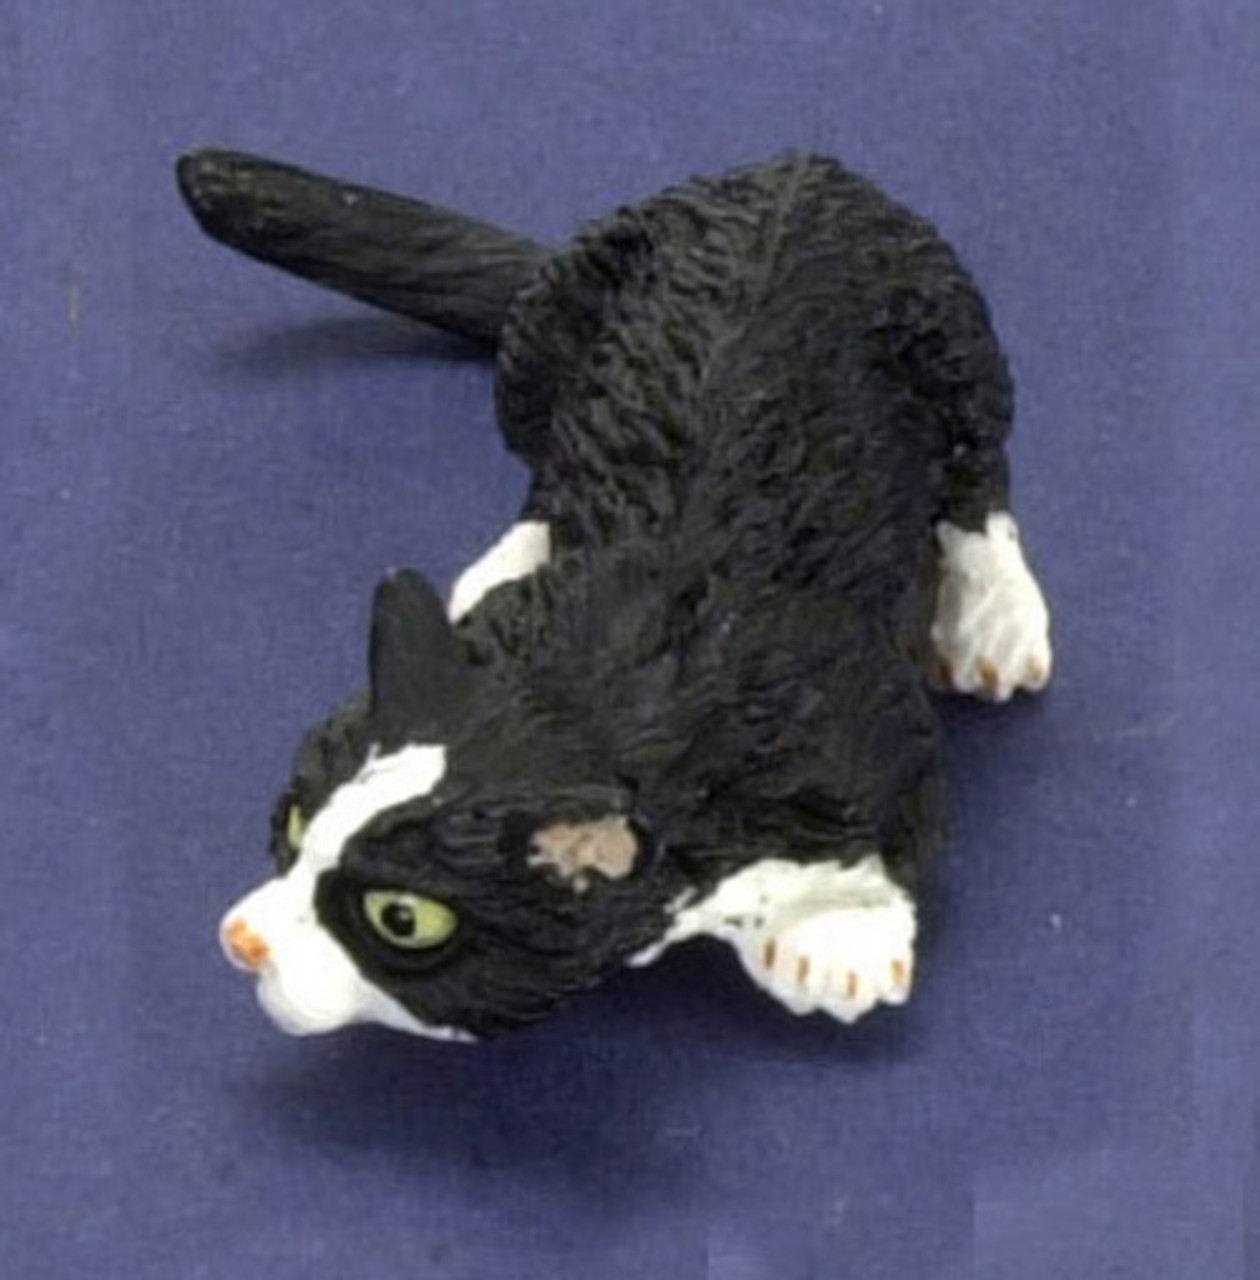 Dollhouse City - Dollhouse Miniatures Sniffing Cat with Socks